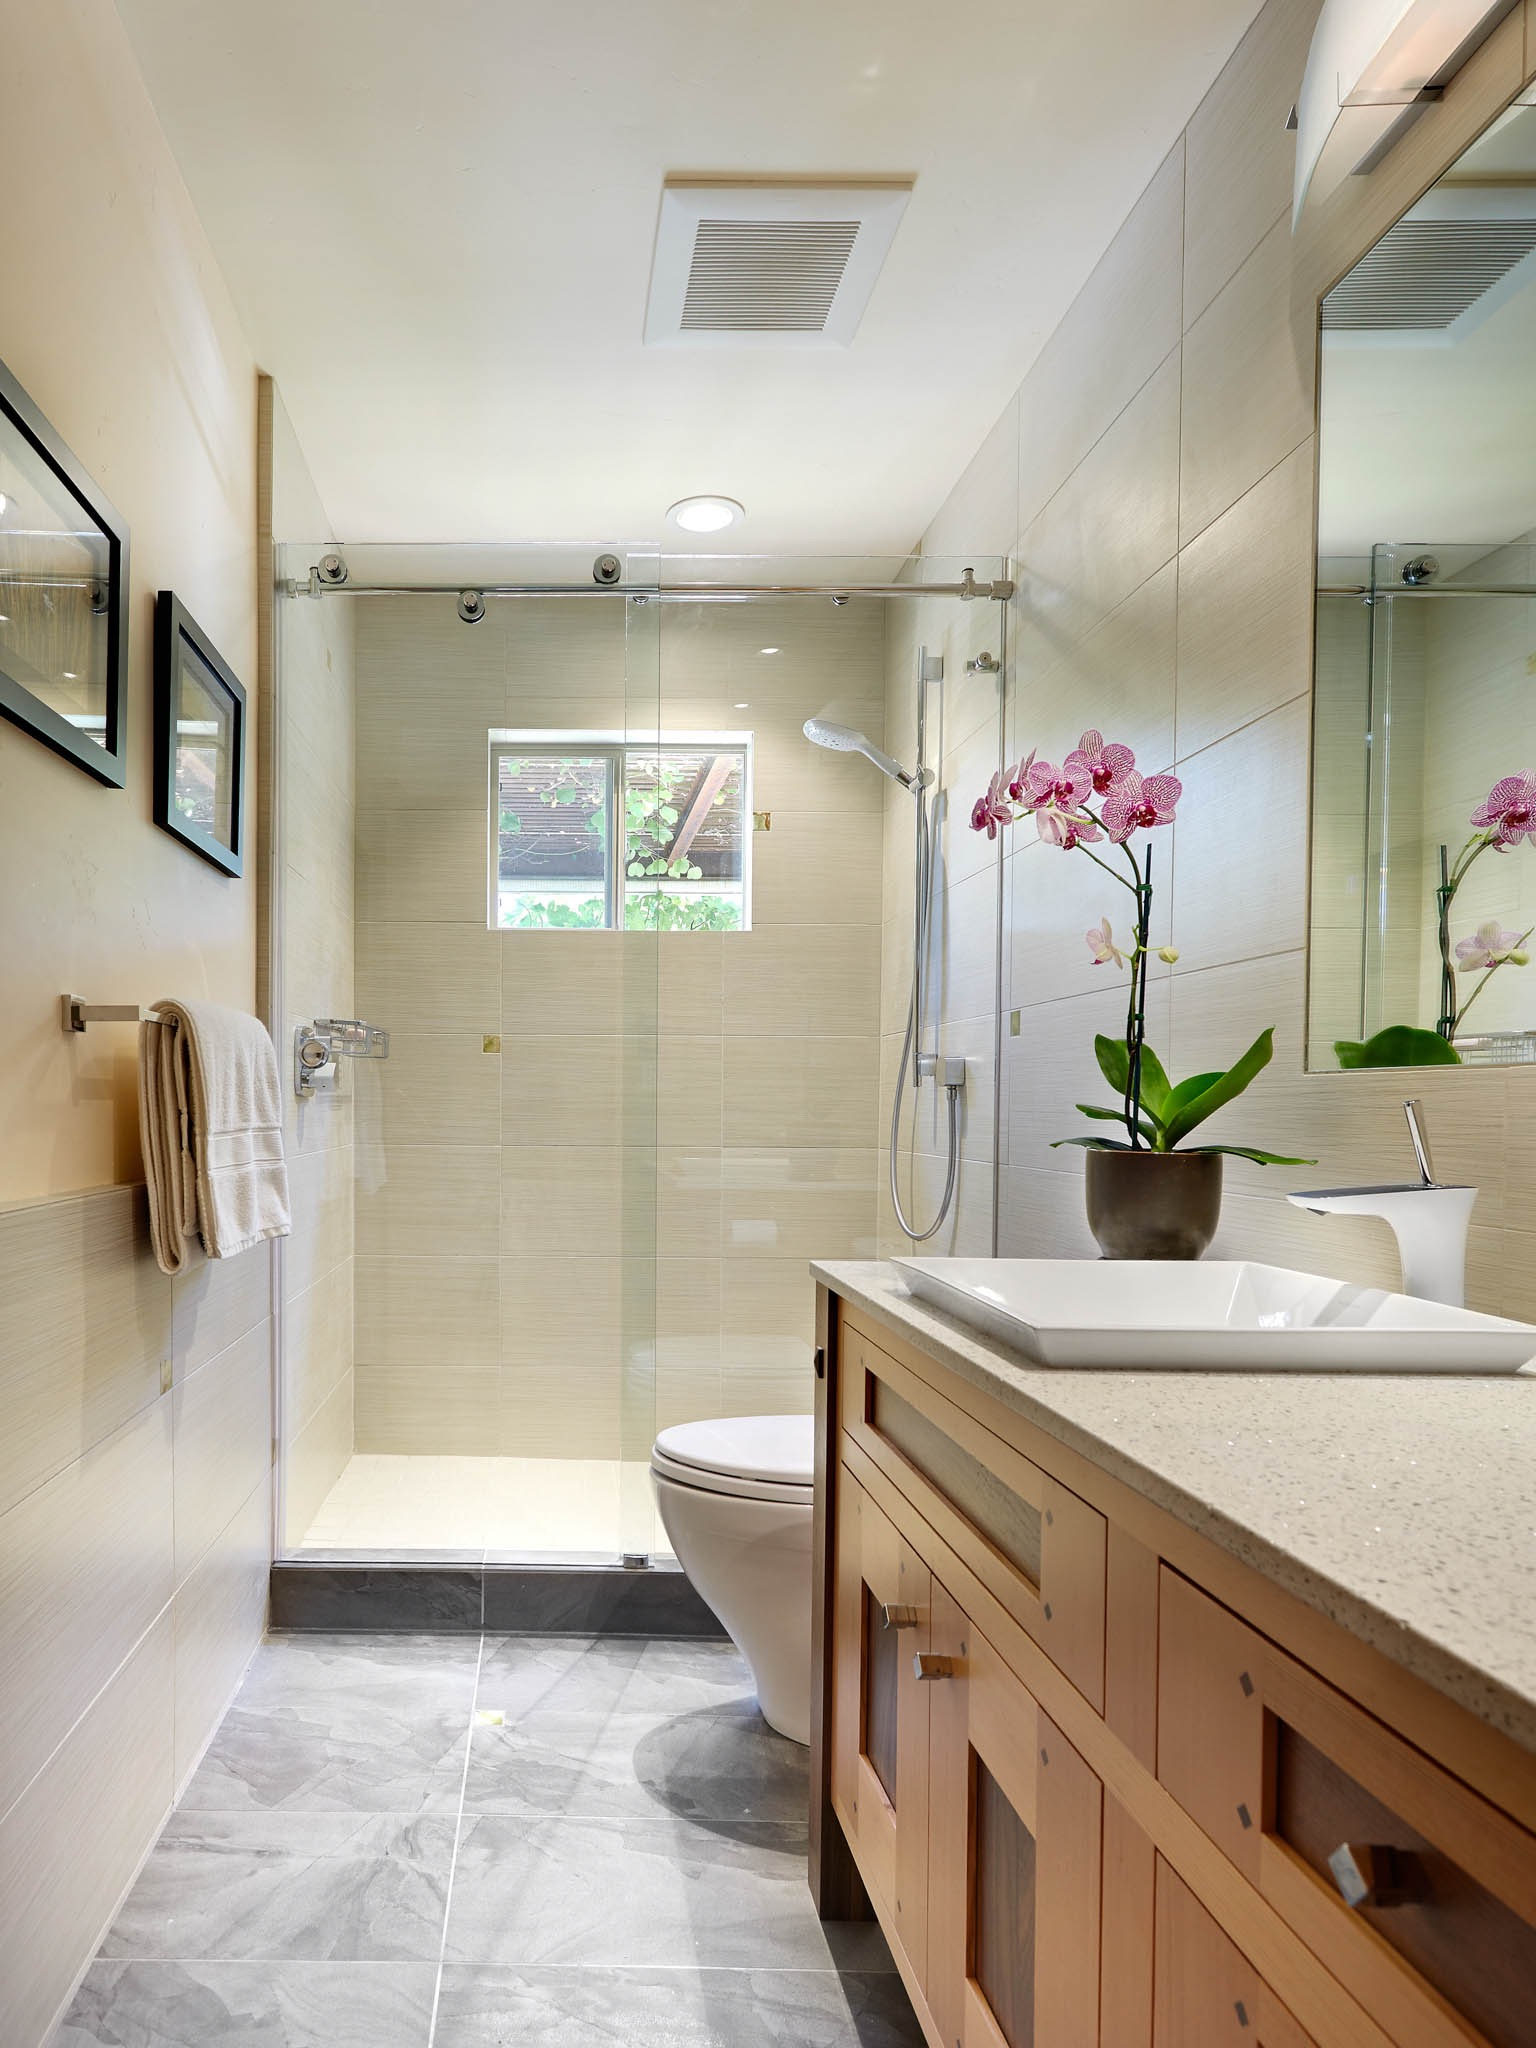 Contemporary Bathroom Renovation (Image 4 of 25)